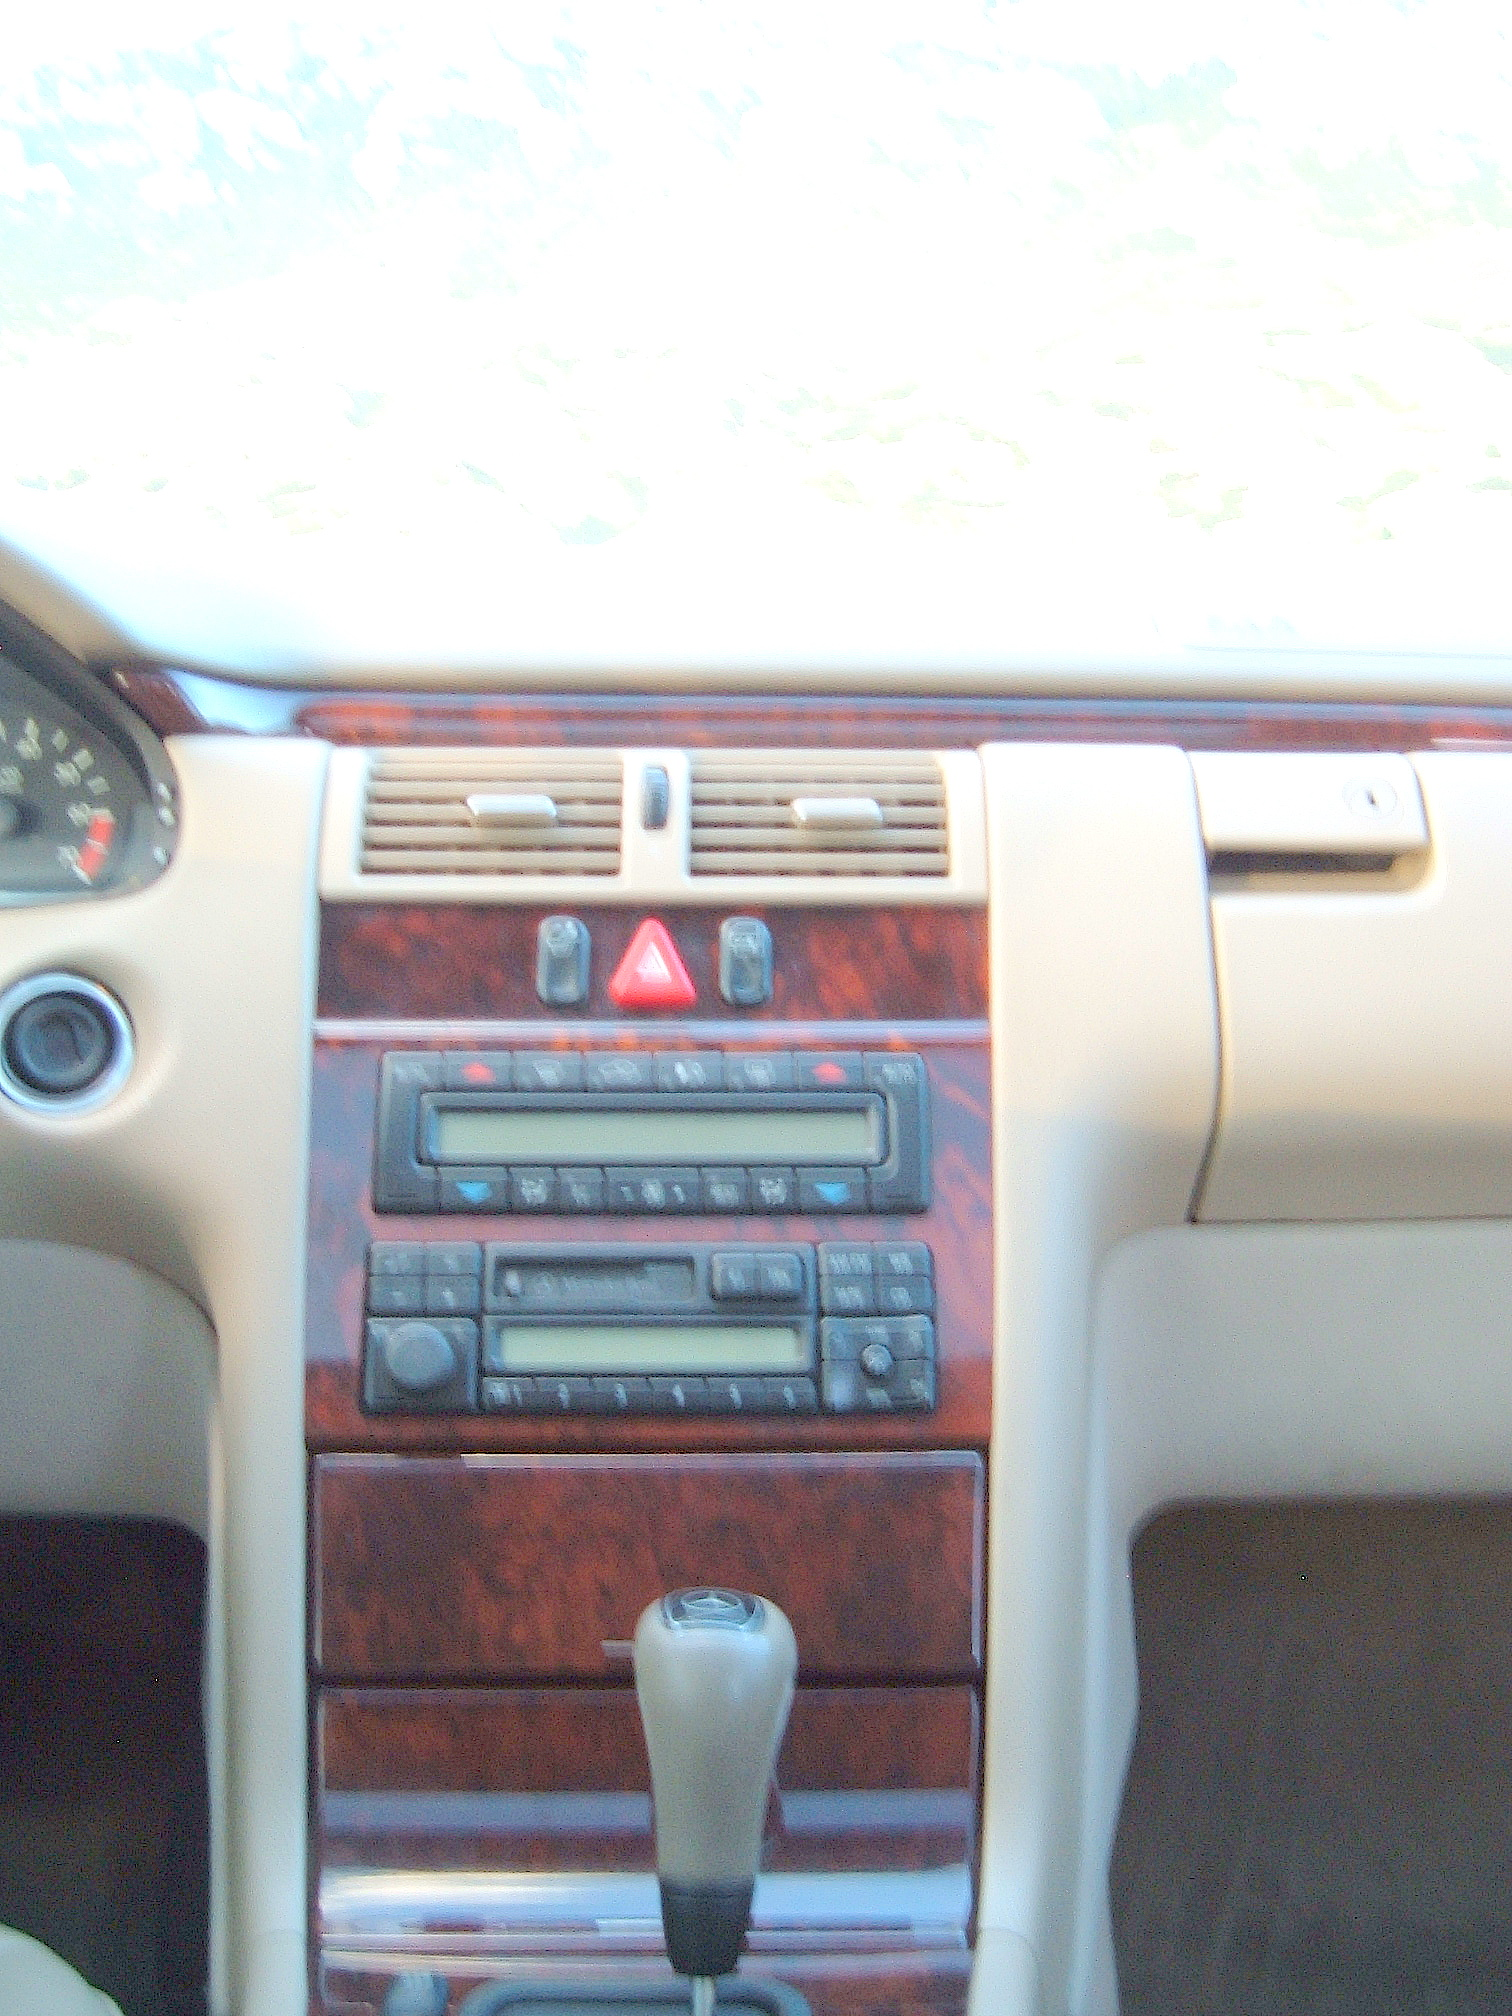 hight resolution of diy mercedes climate control doesn t work buttons broken 1408302685